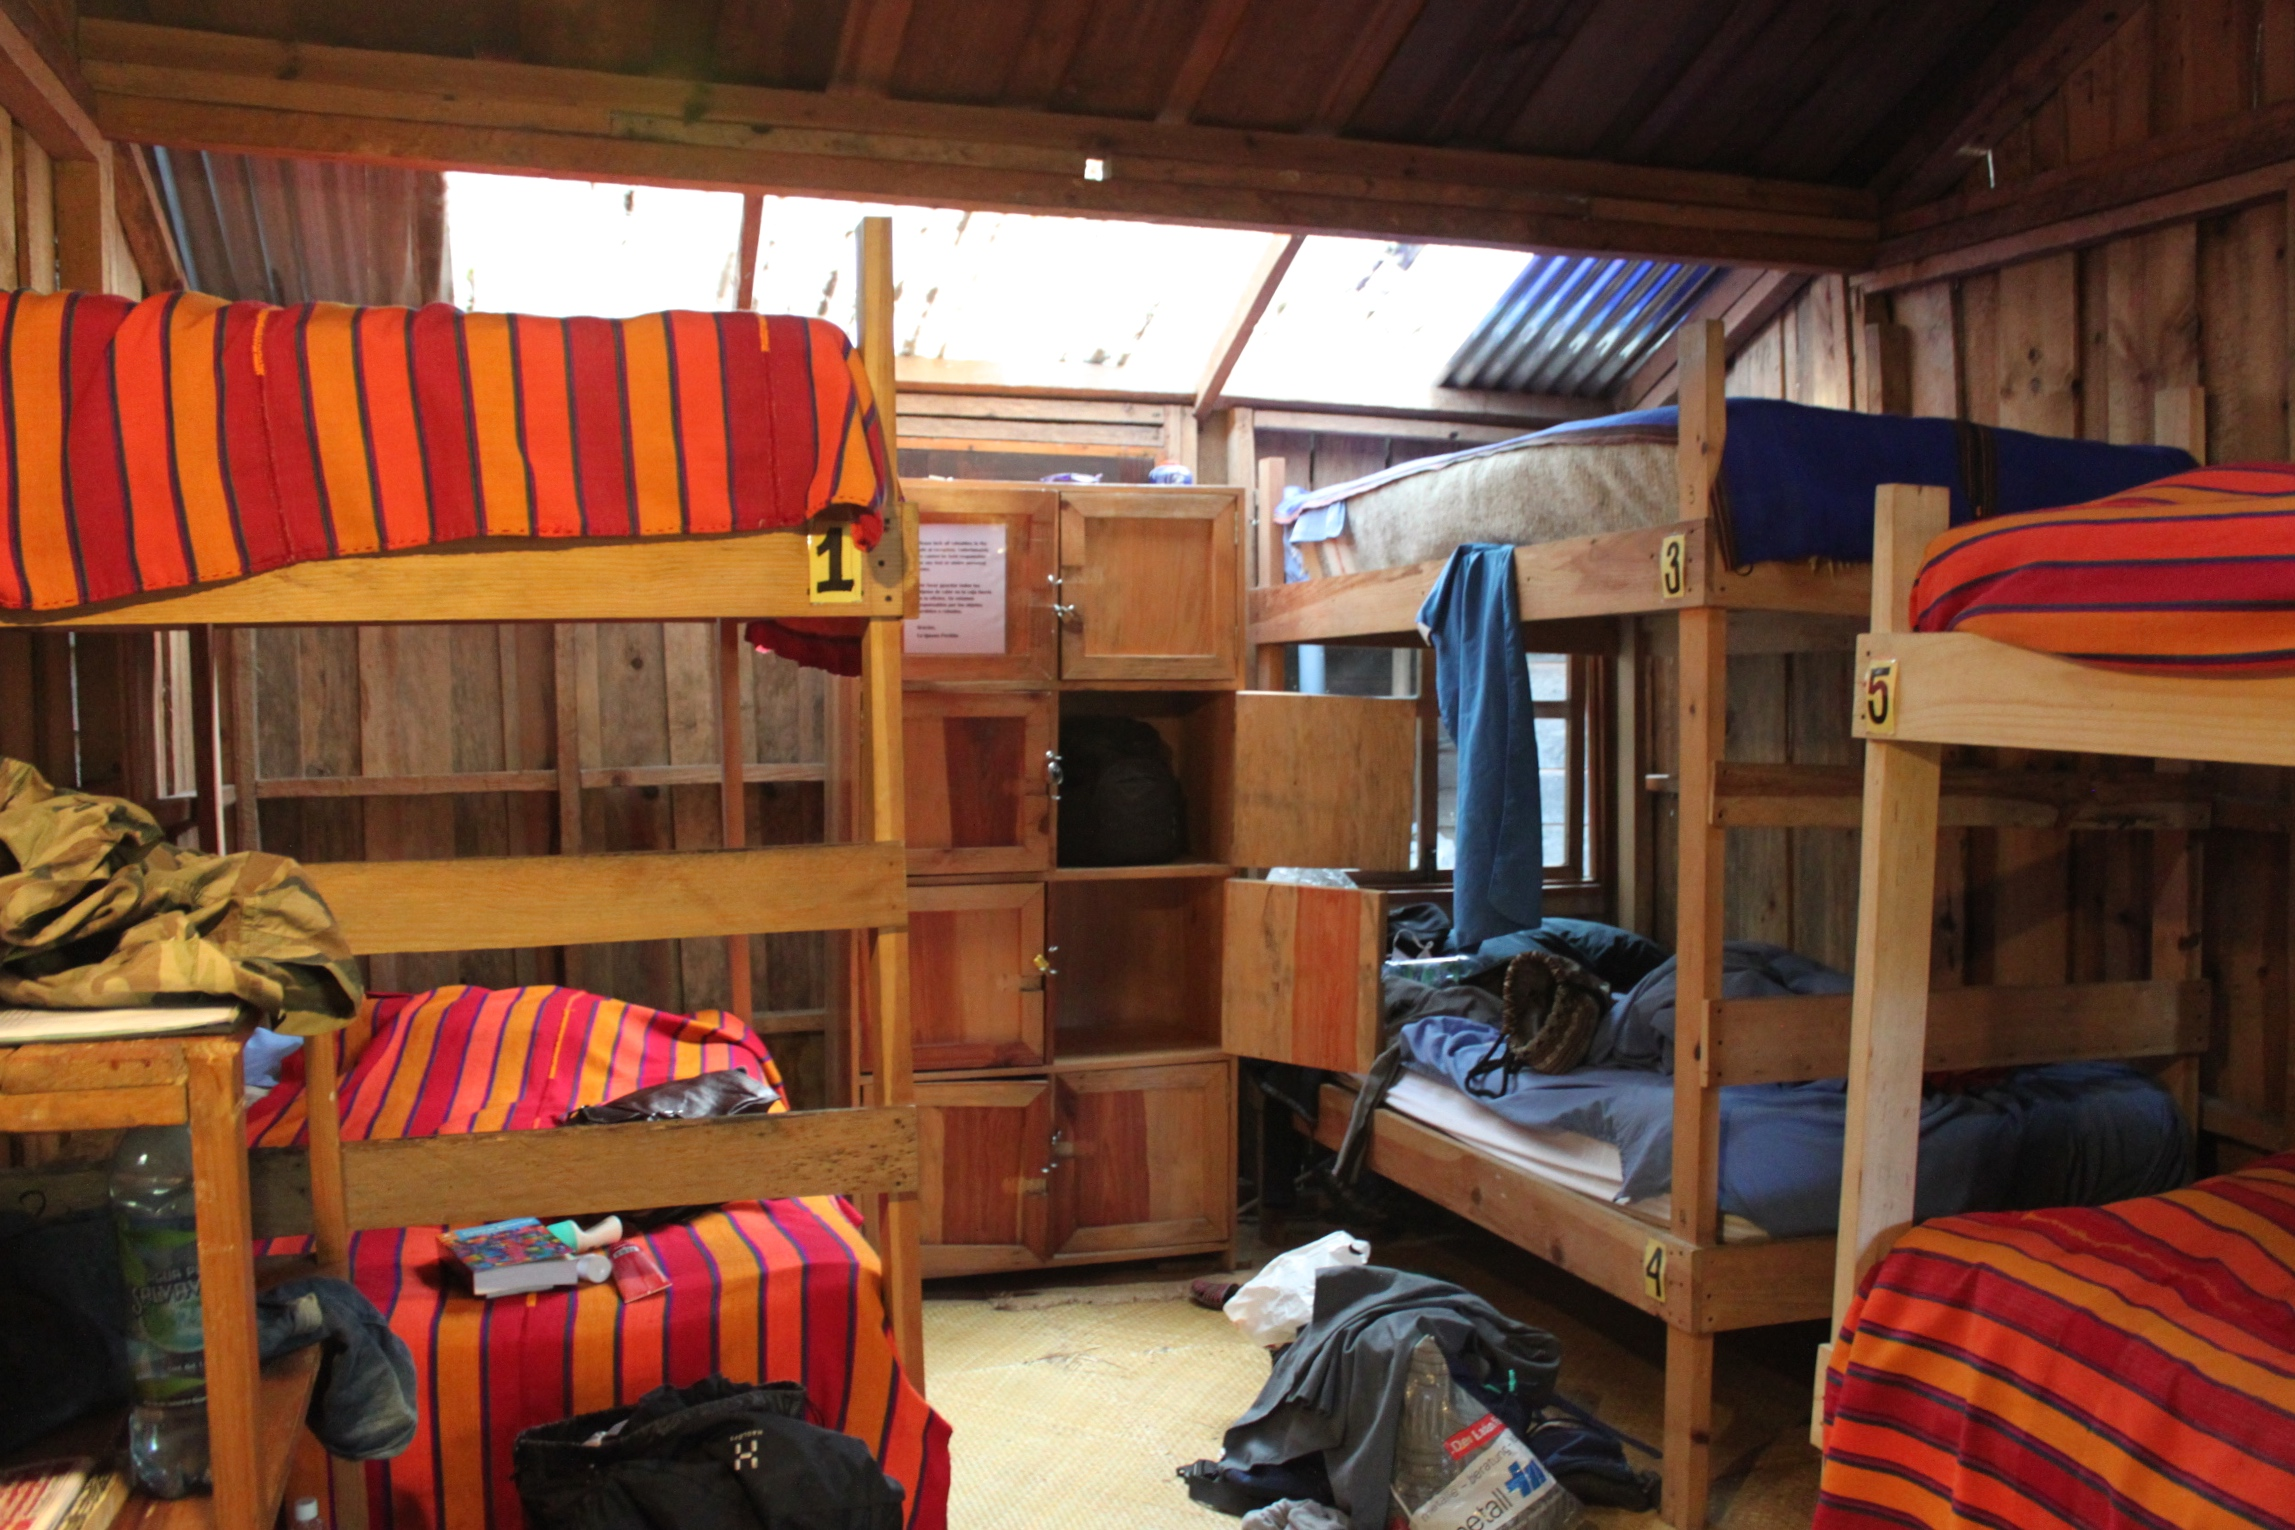 Ideal My room was a wooden bungalow with a corrugated tin roof and bunk beds inside There was no air conditioner or plugs and only a single light